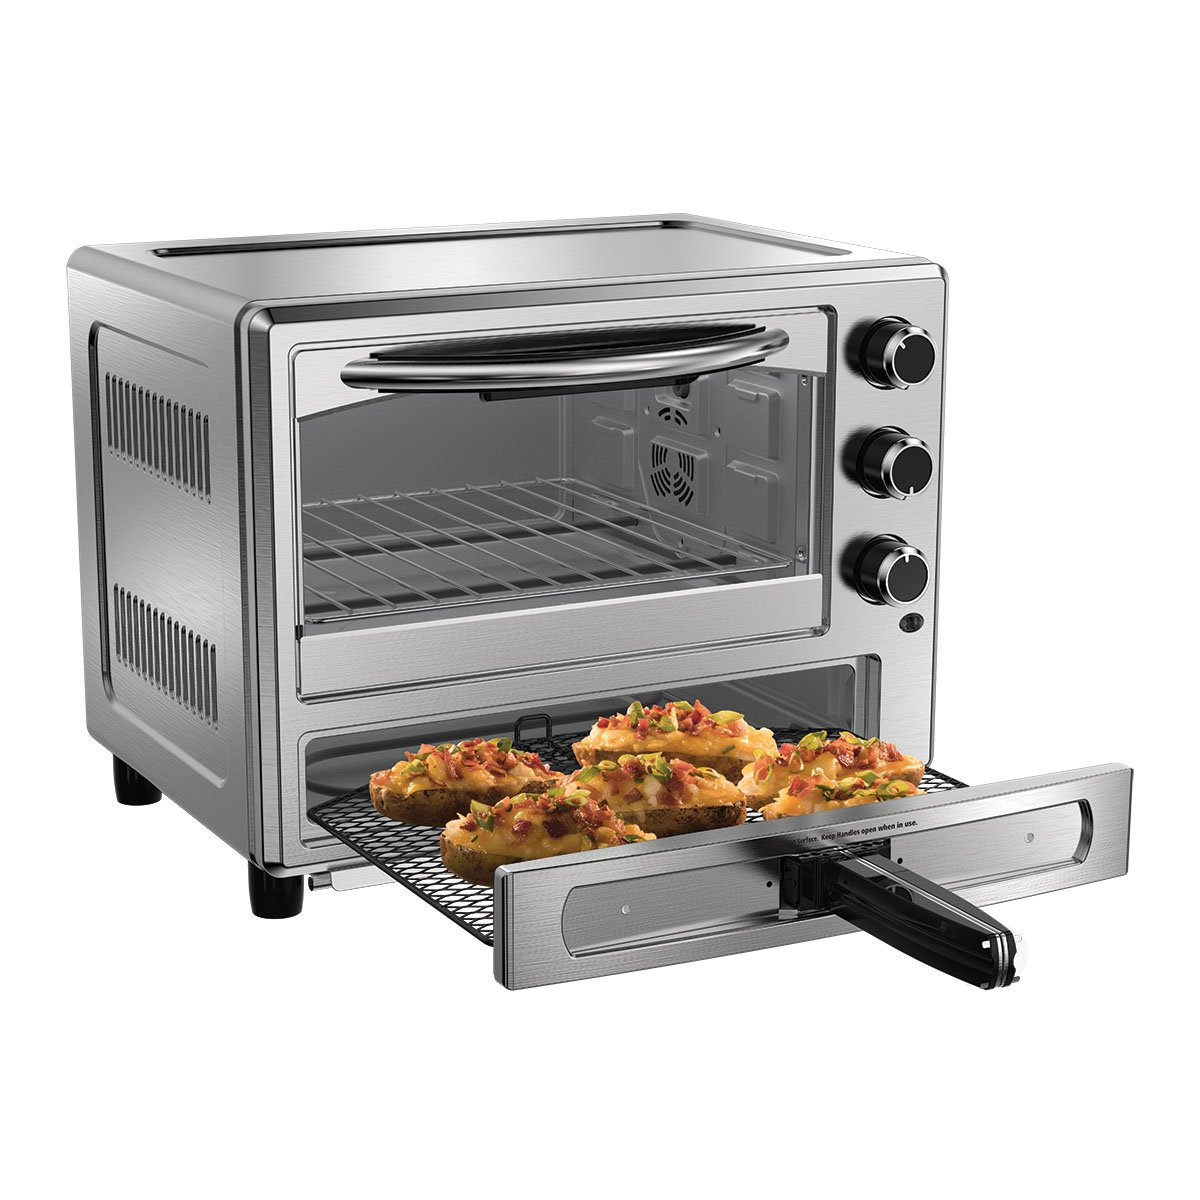 Countertop Pizza Oven Reviews Best Convection Oven Reviews 2019 Countertop Models Rated